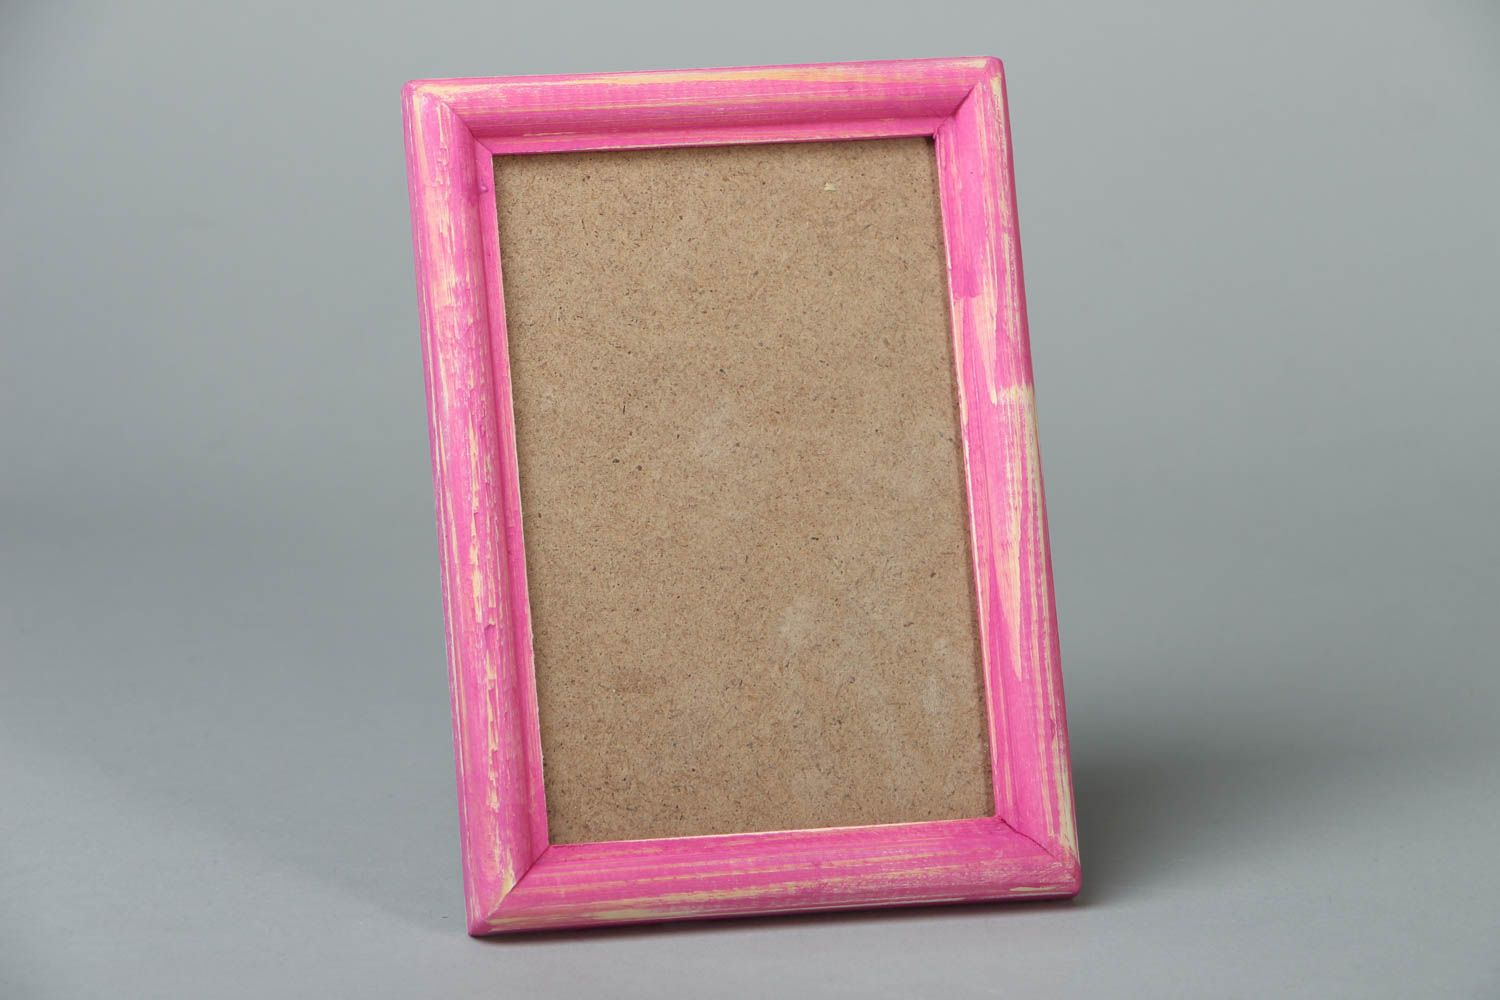 Pink wooden photo frame photo 1